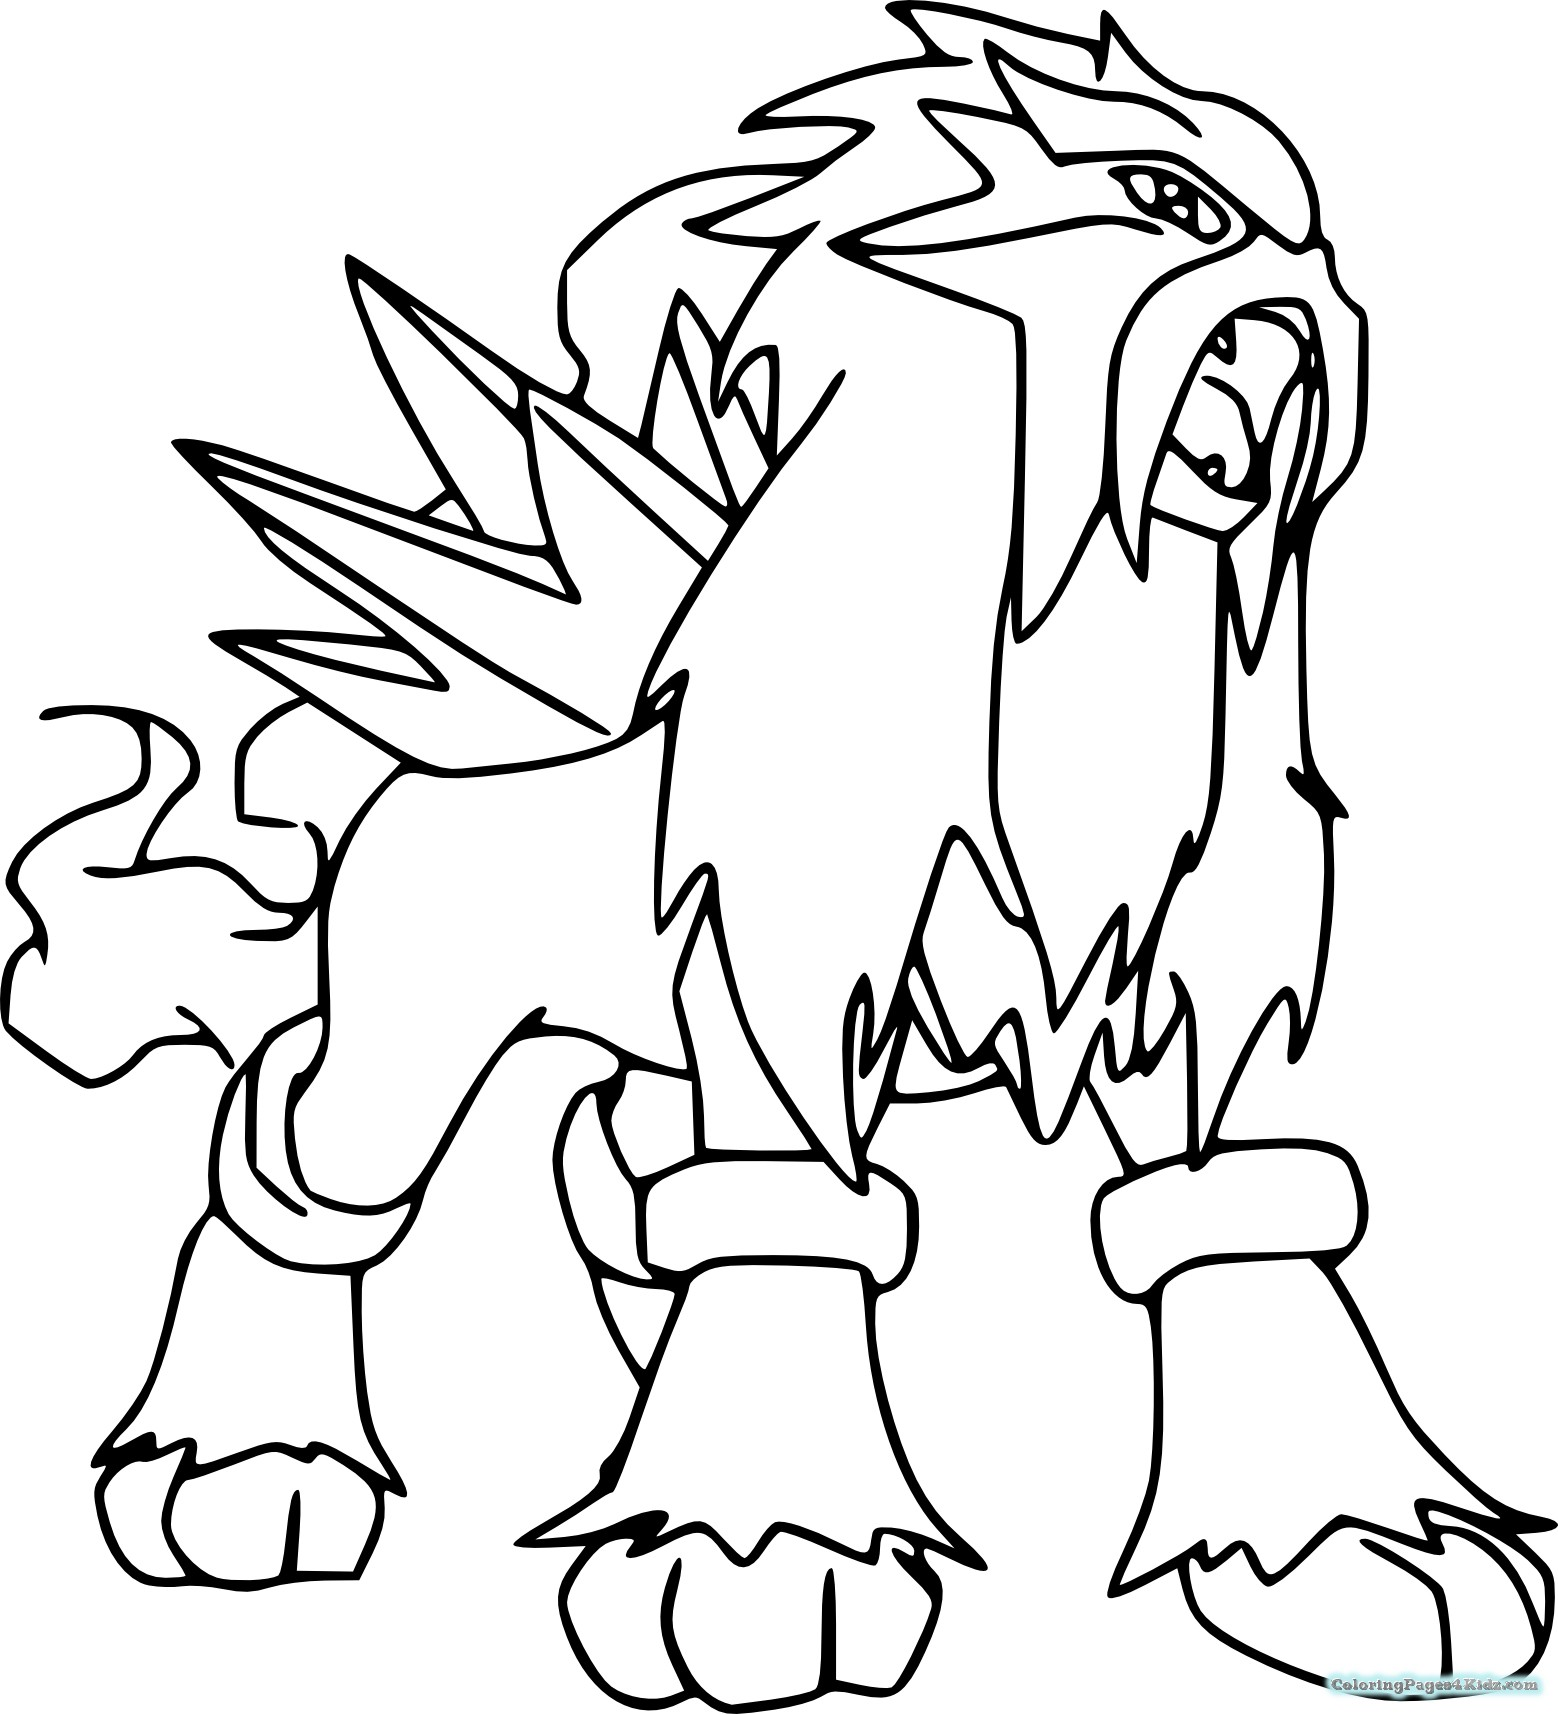 Pokemon Coloring Pages Free Download Best Pokemon Coloring